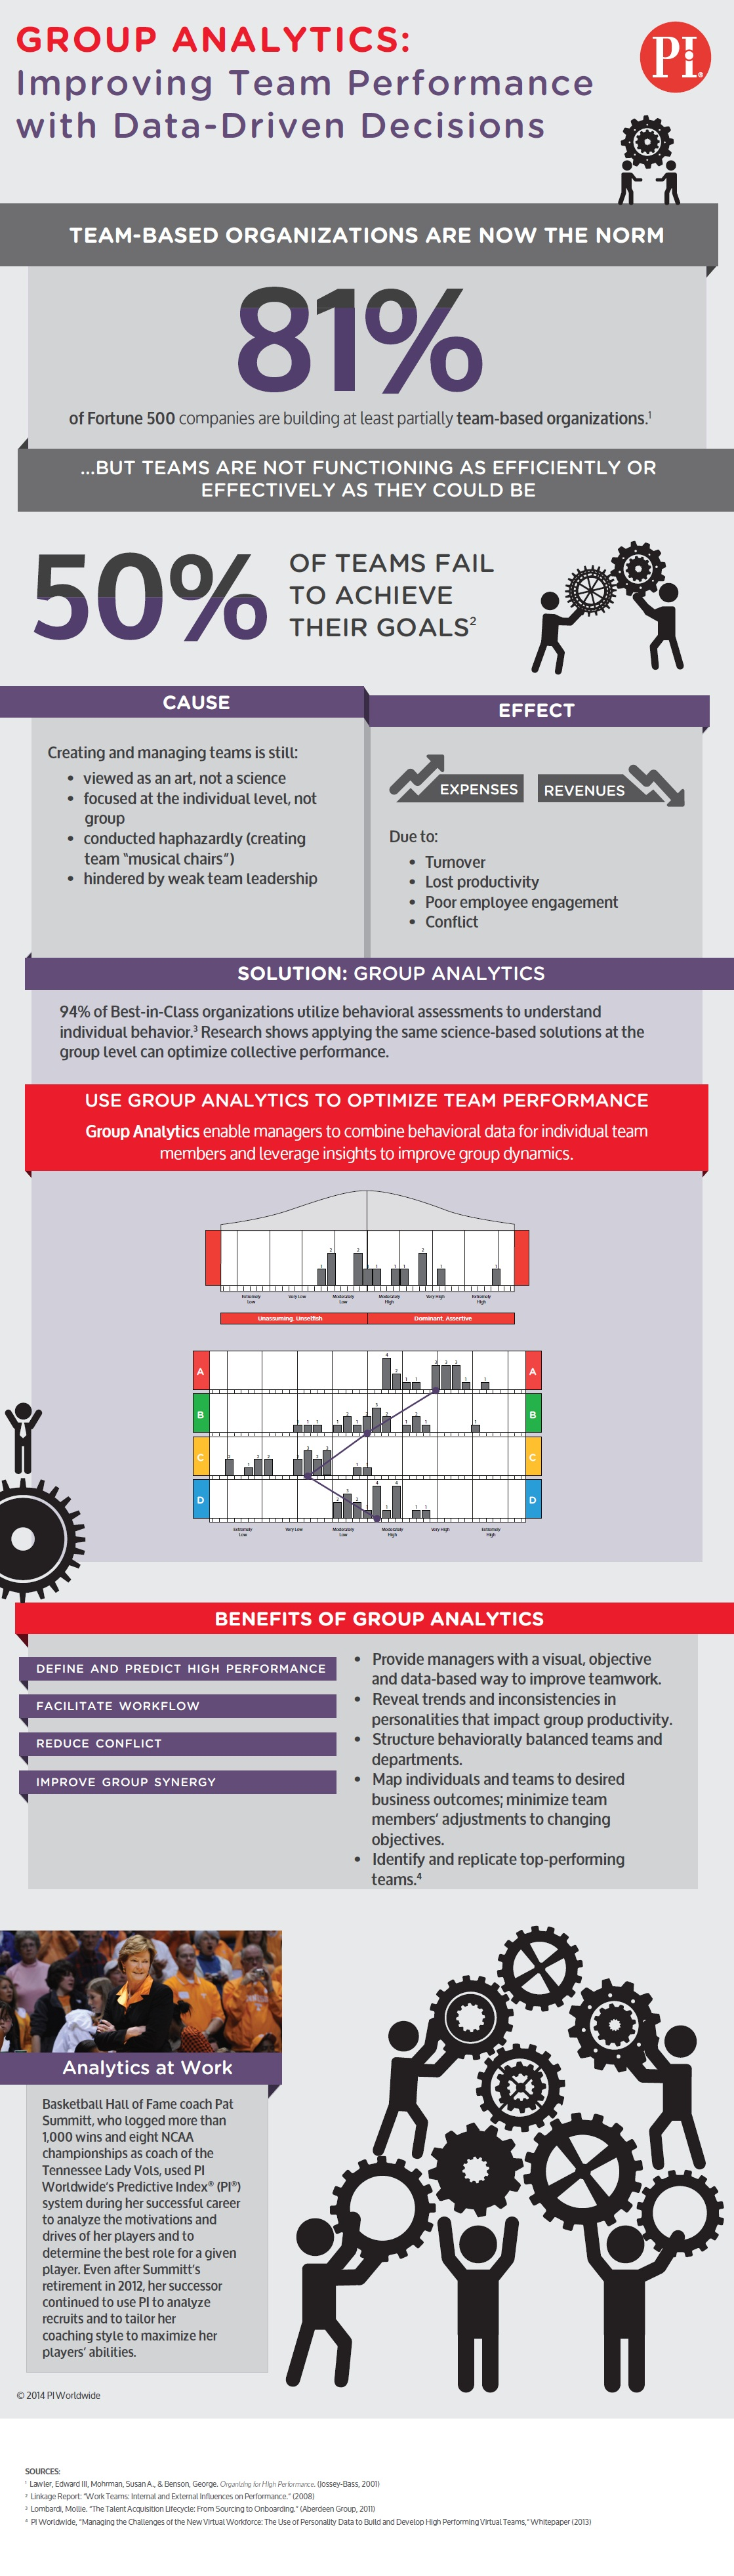 Group Analytics